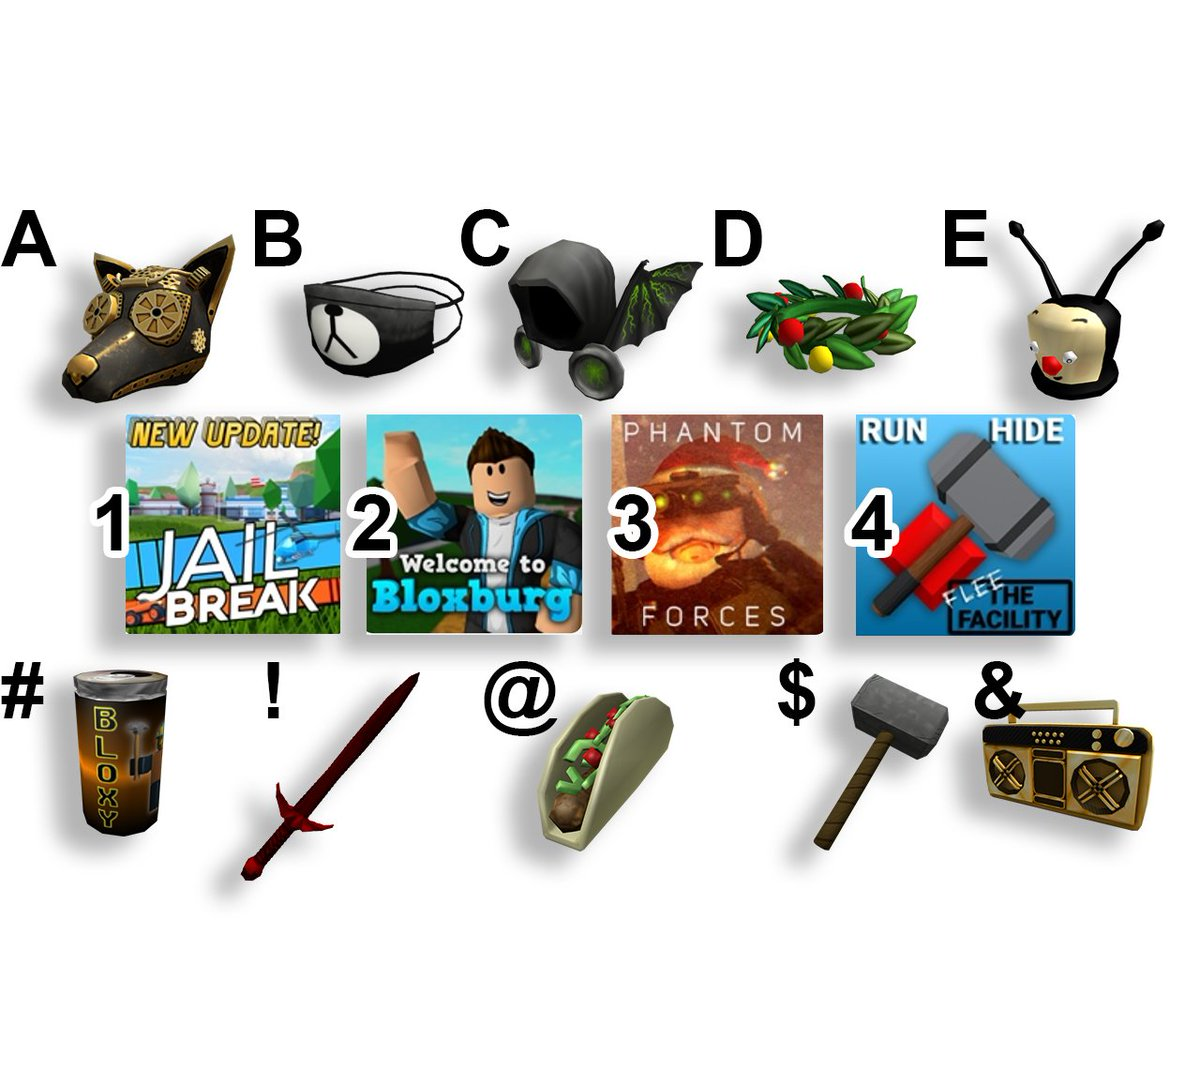 Which combo are you picking for the ultimate Roblox experience? 👀